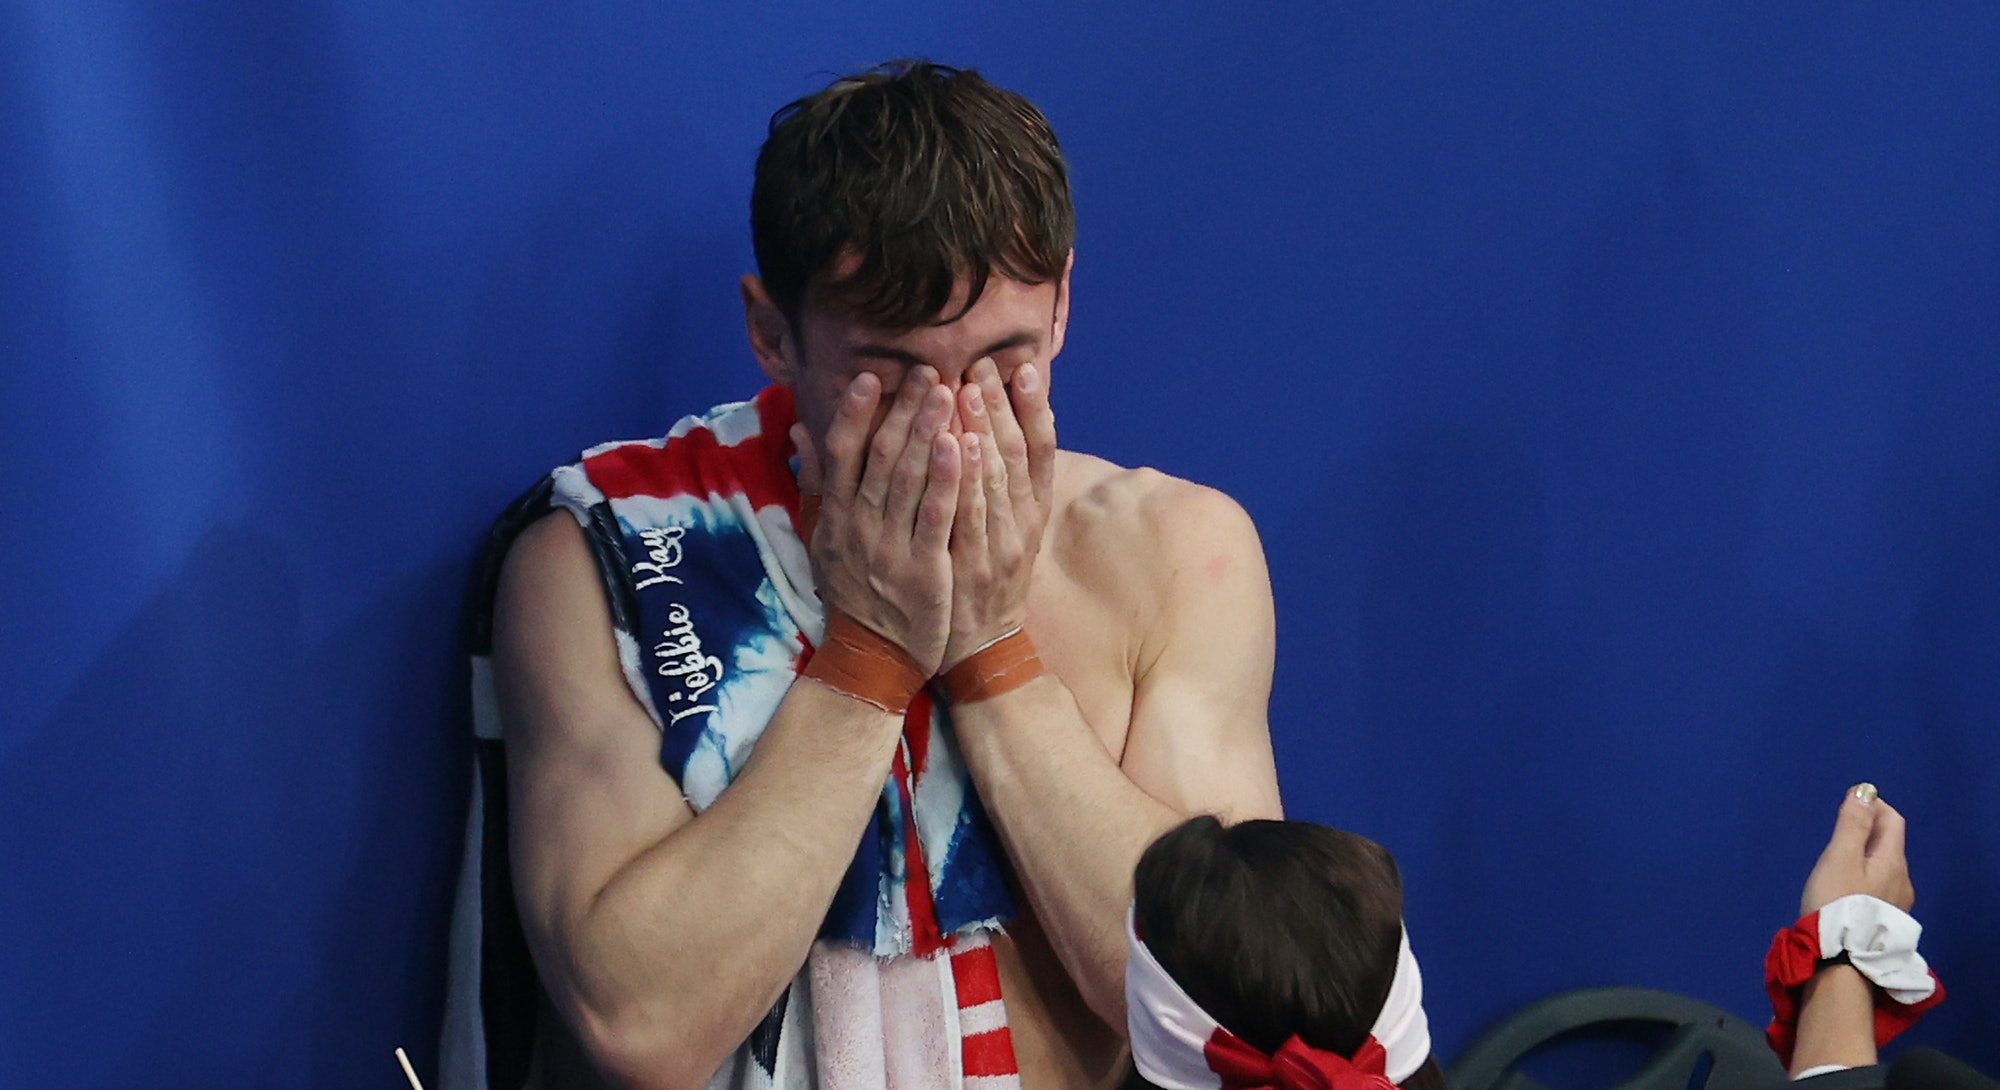 Tom Daley of Team Great Britain celebrates after winning gold.